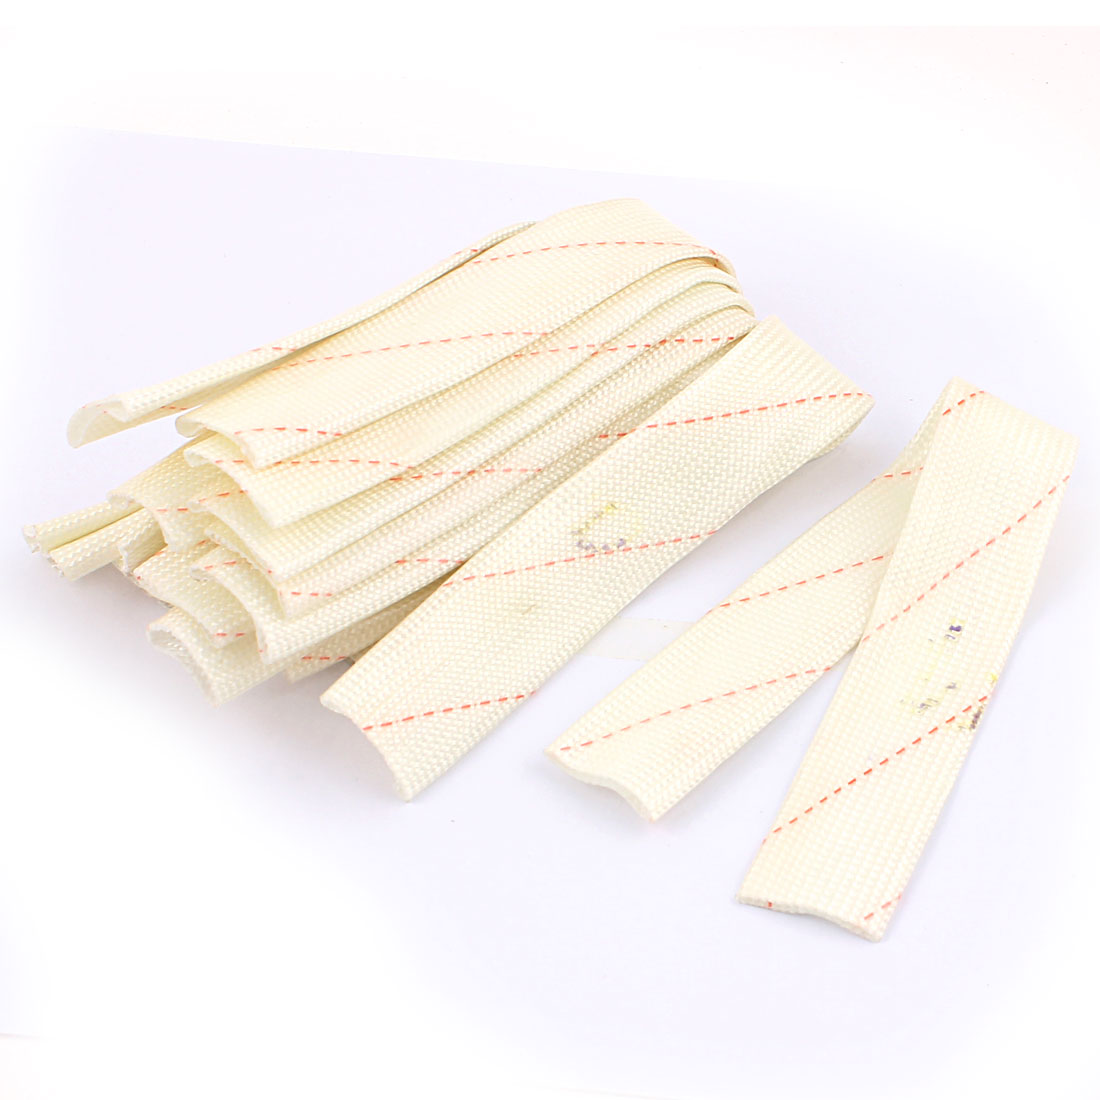 12 Pcs 20mm Electrical Wire Fiberglass Insulation Sleeving 30cm